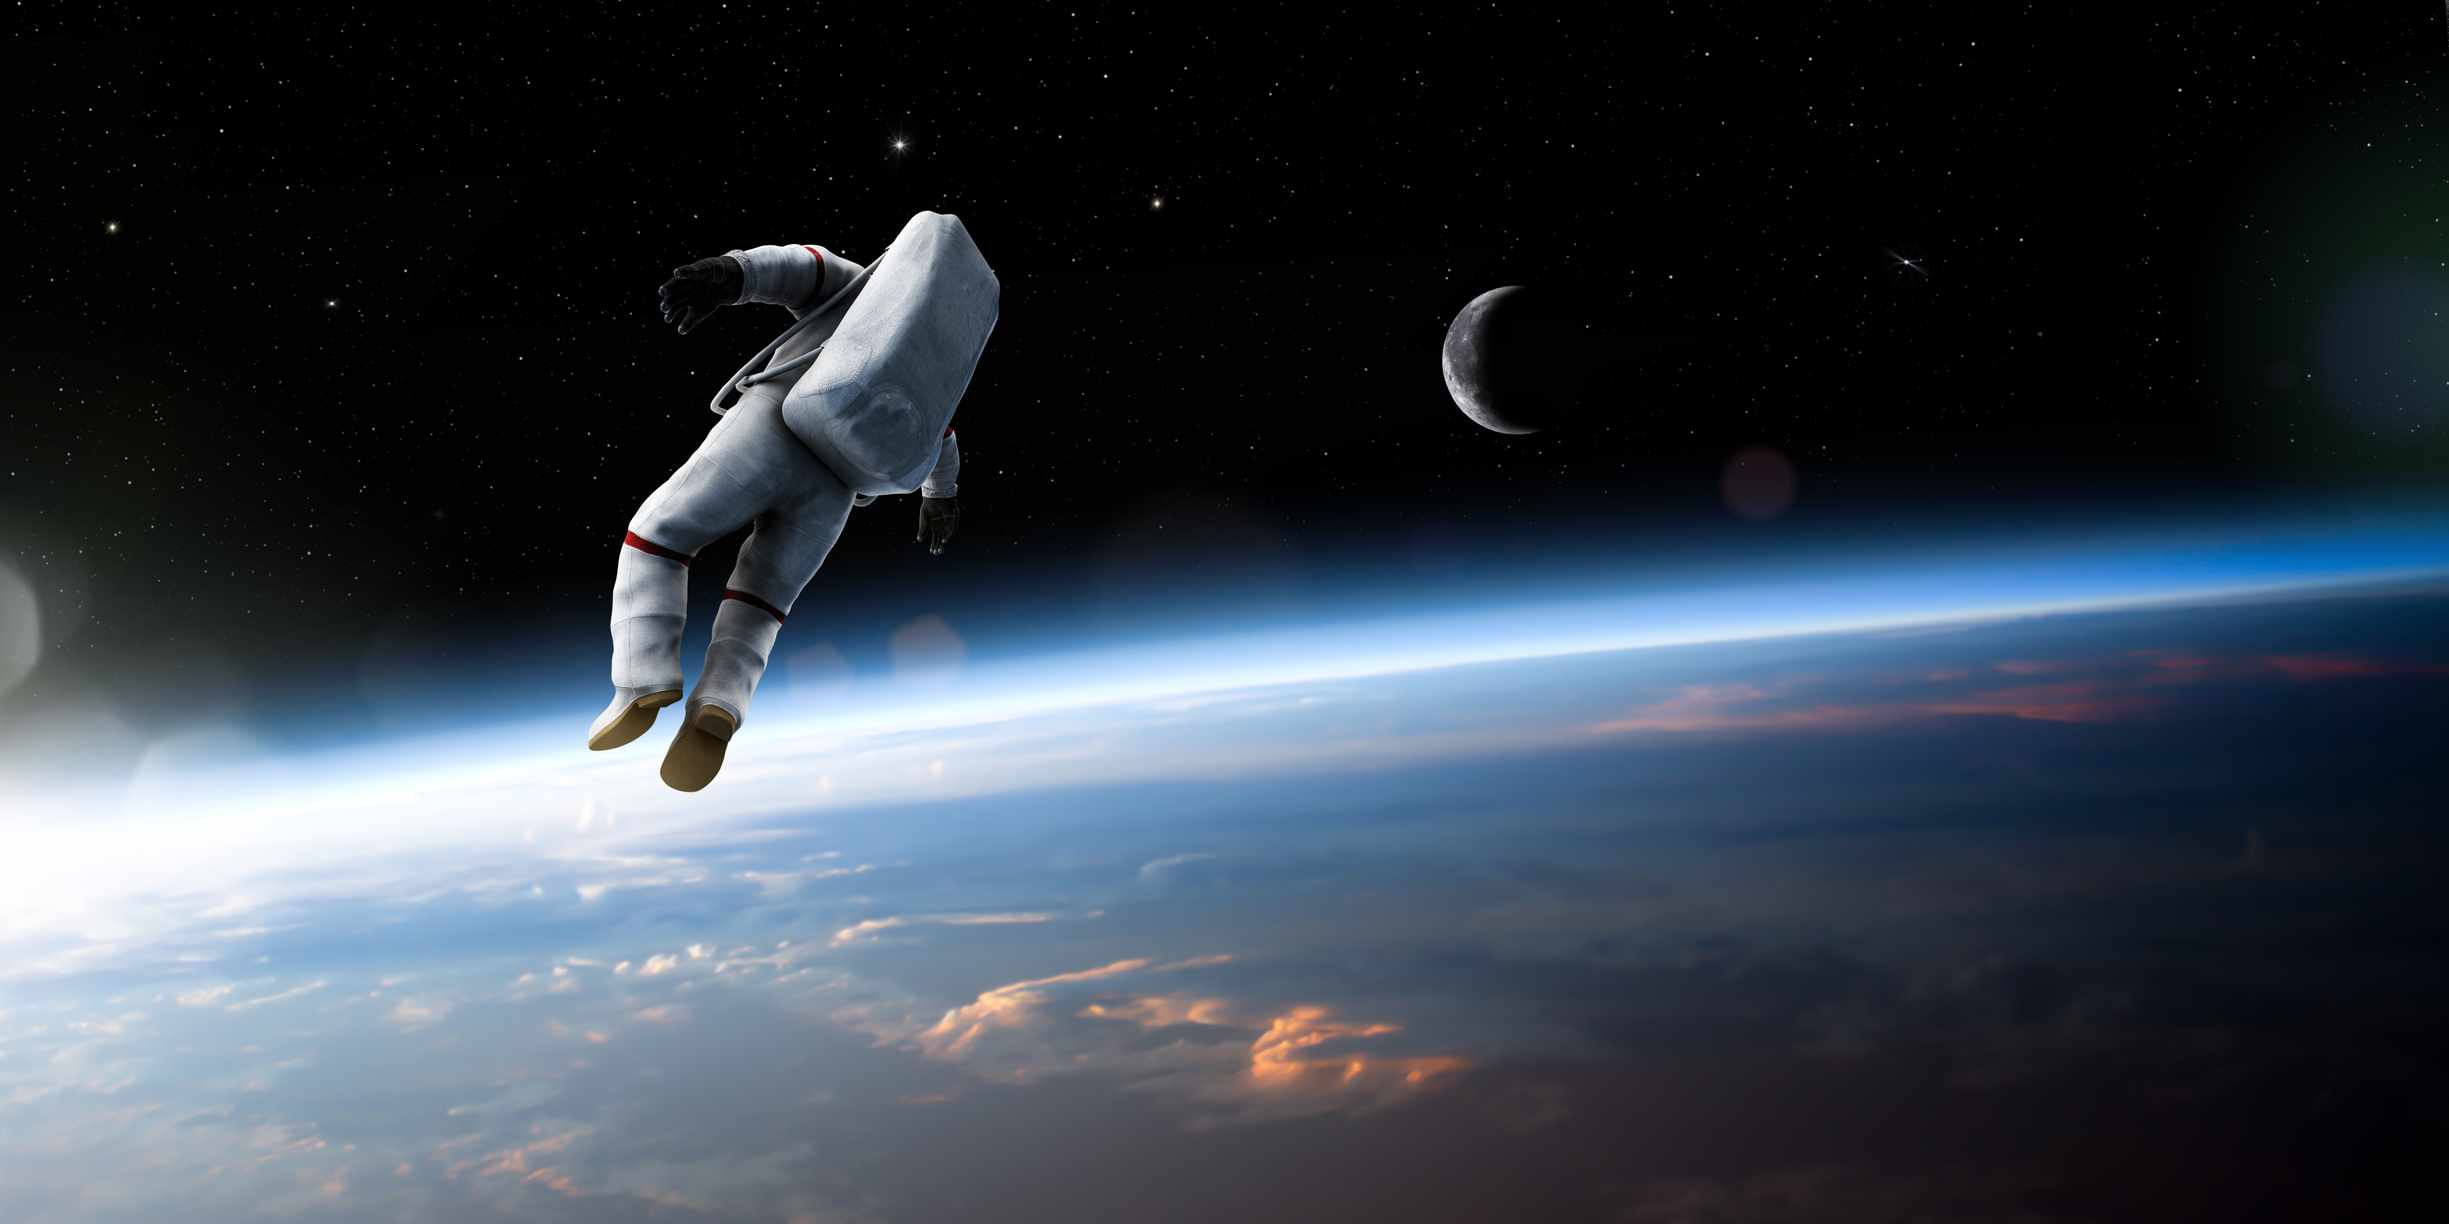 A composite image of an untethered astronaut in rear view, isolated and drifting off into deep space above the earth. This image uses a mixture of both CGI elements for the spaceman, and public domain NASA imagery for the earth and moon. The astronaut is wearing a generic space suit. © Getty Images